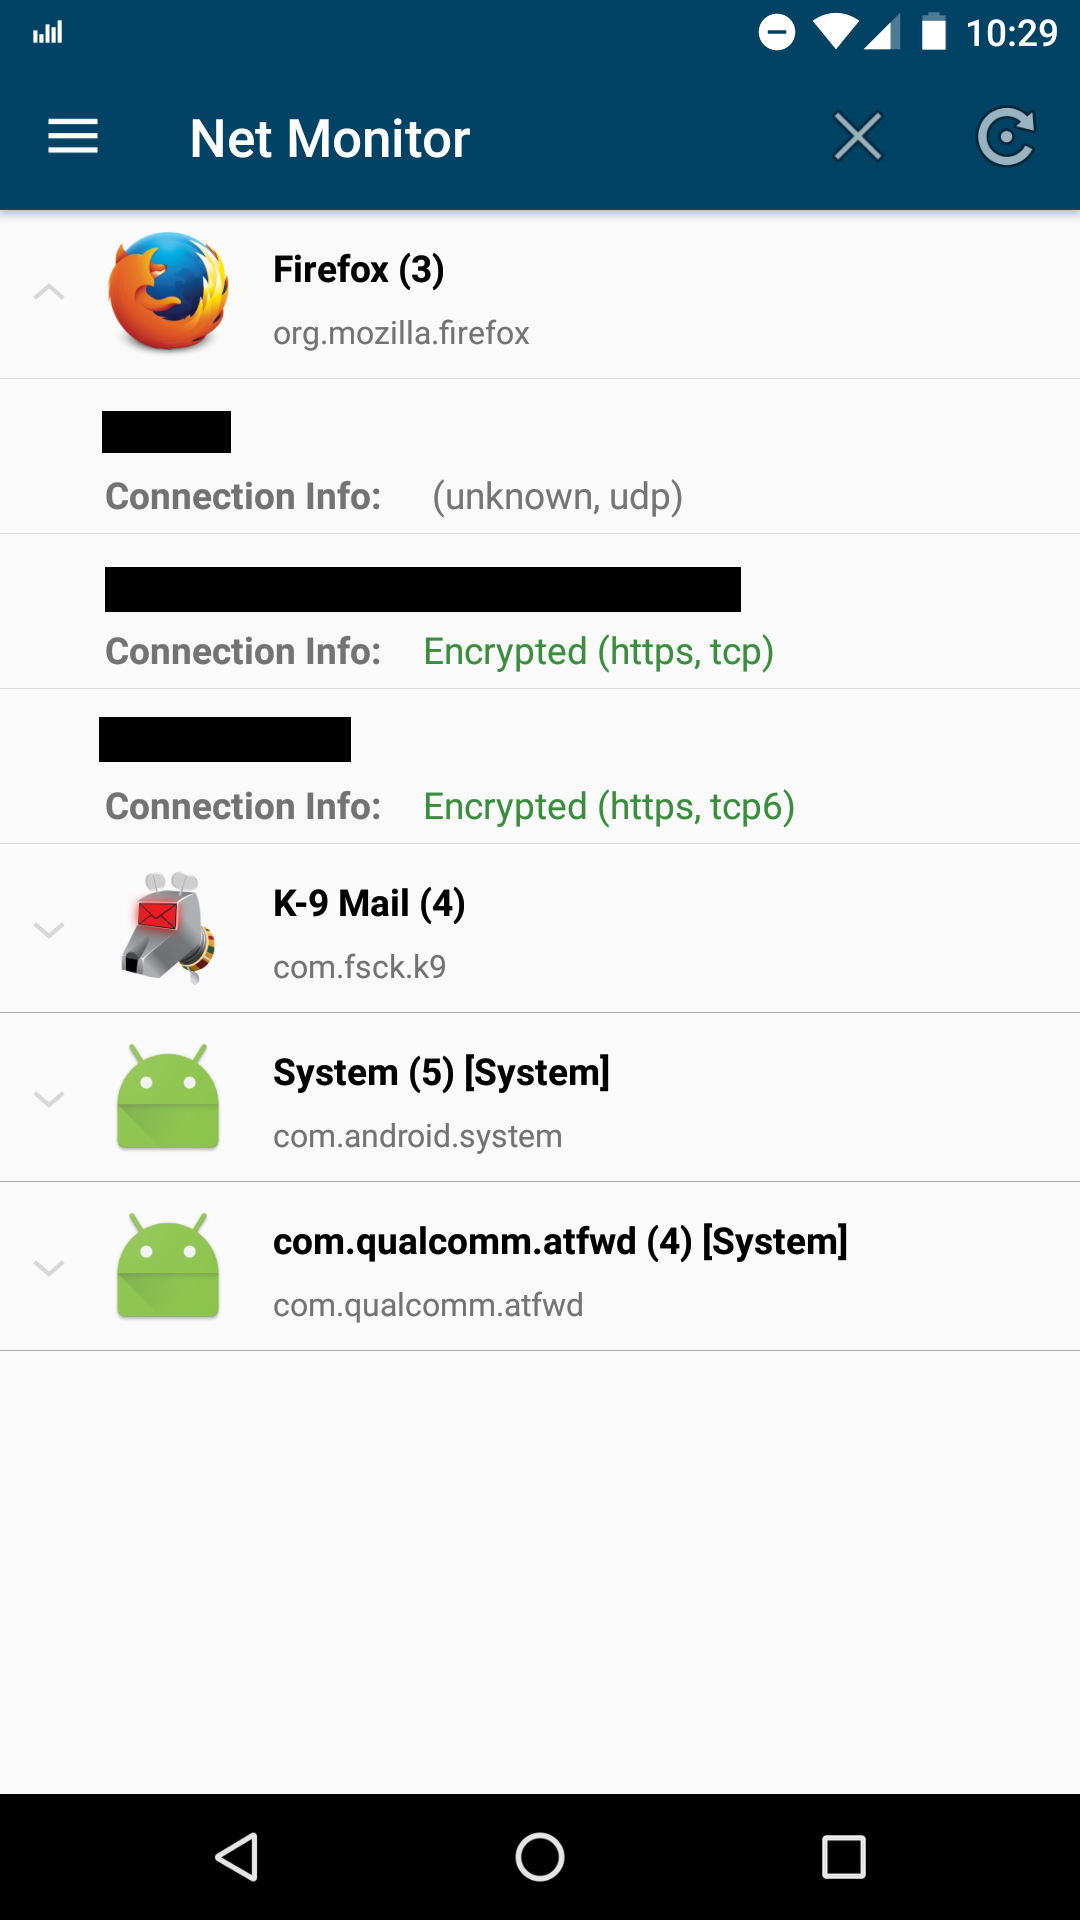 Android gives apps full access to your network activity.